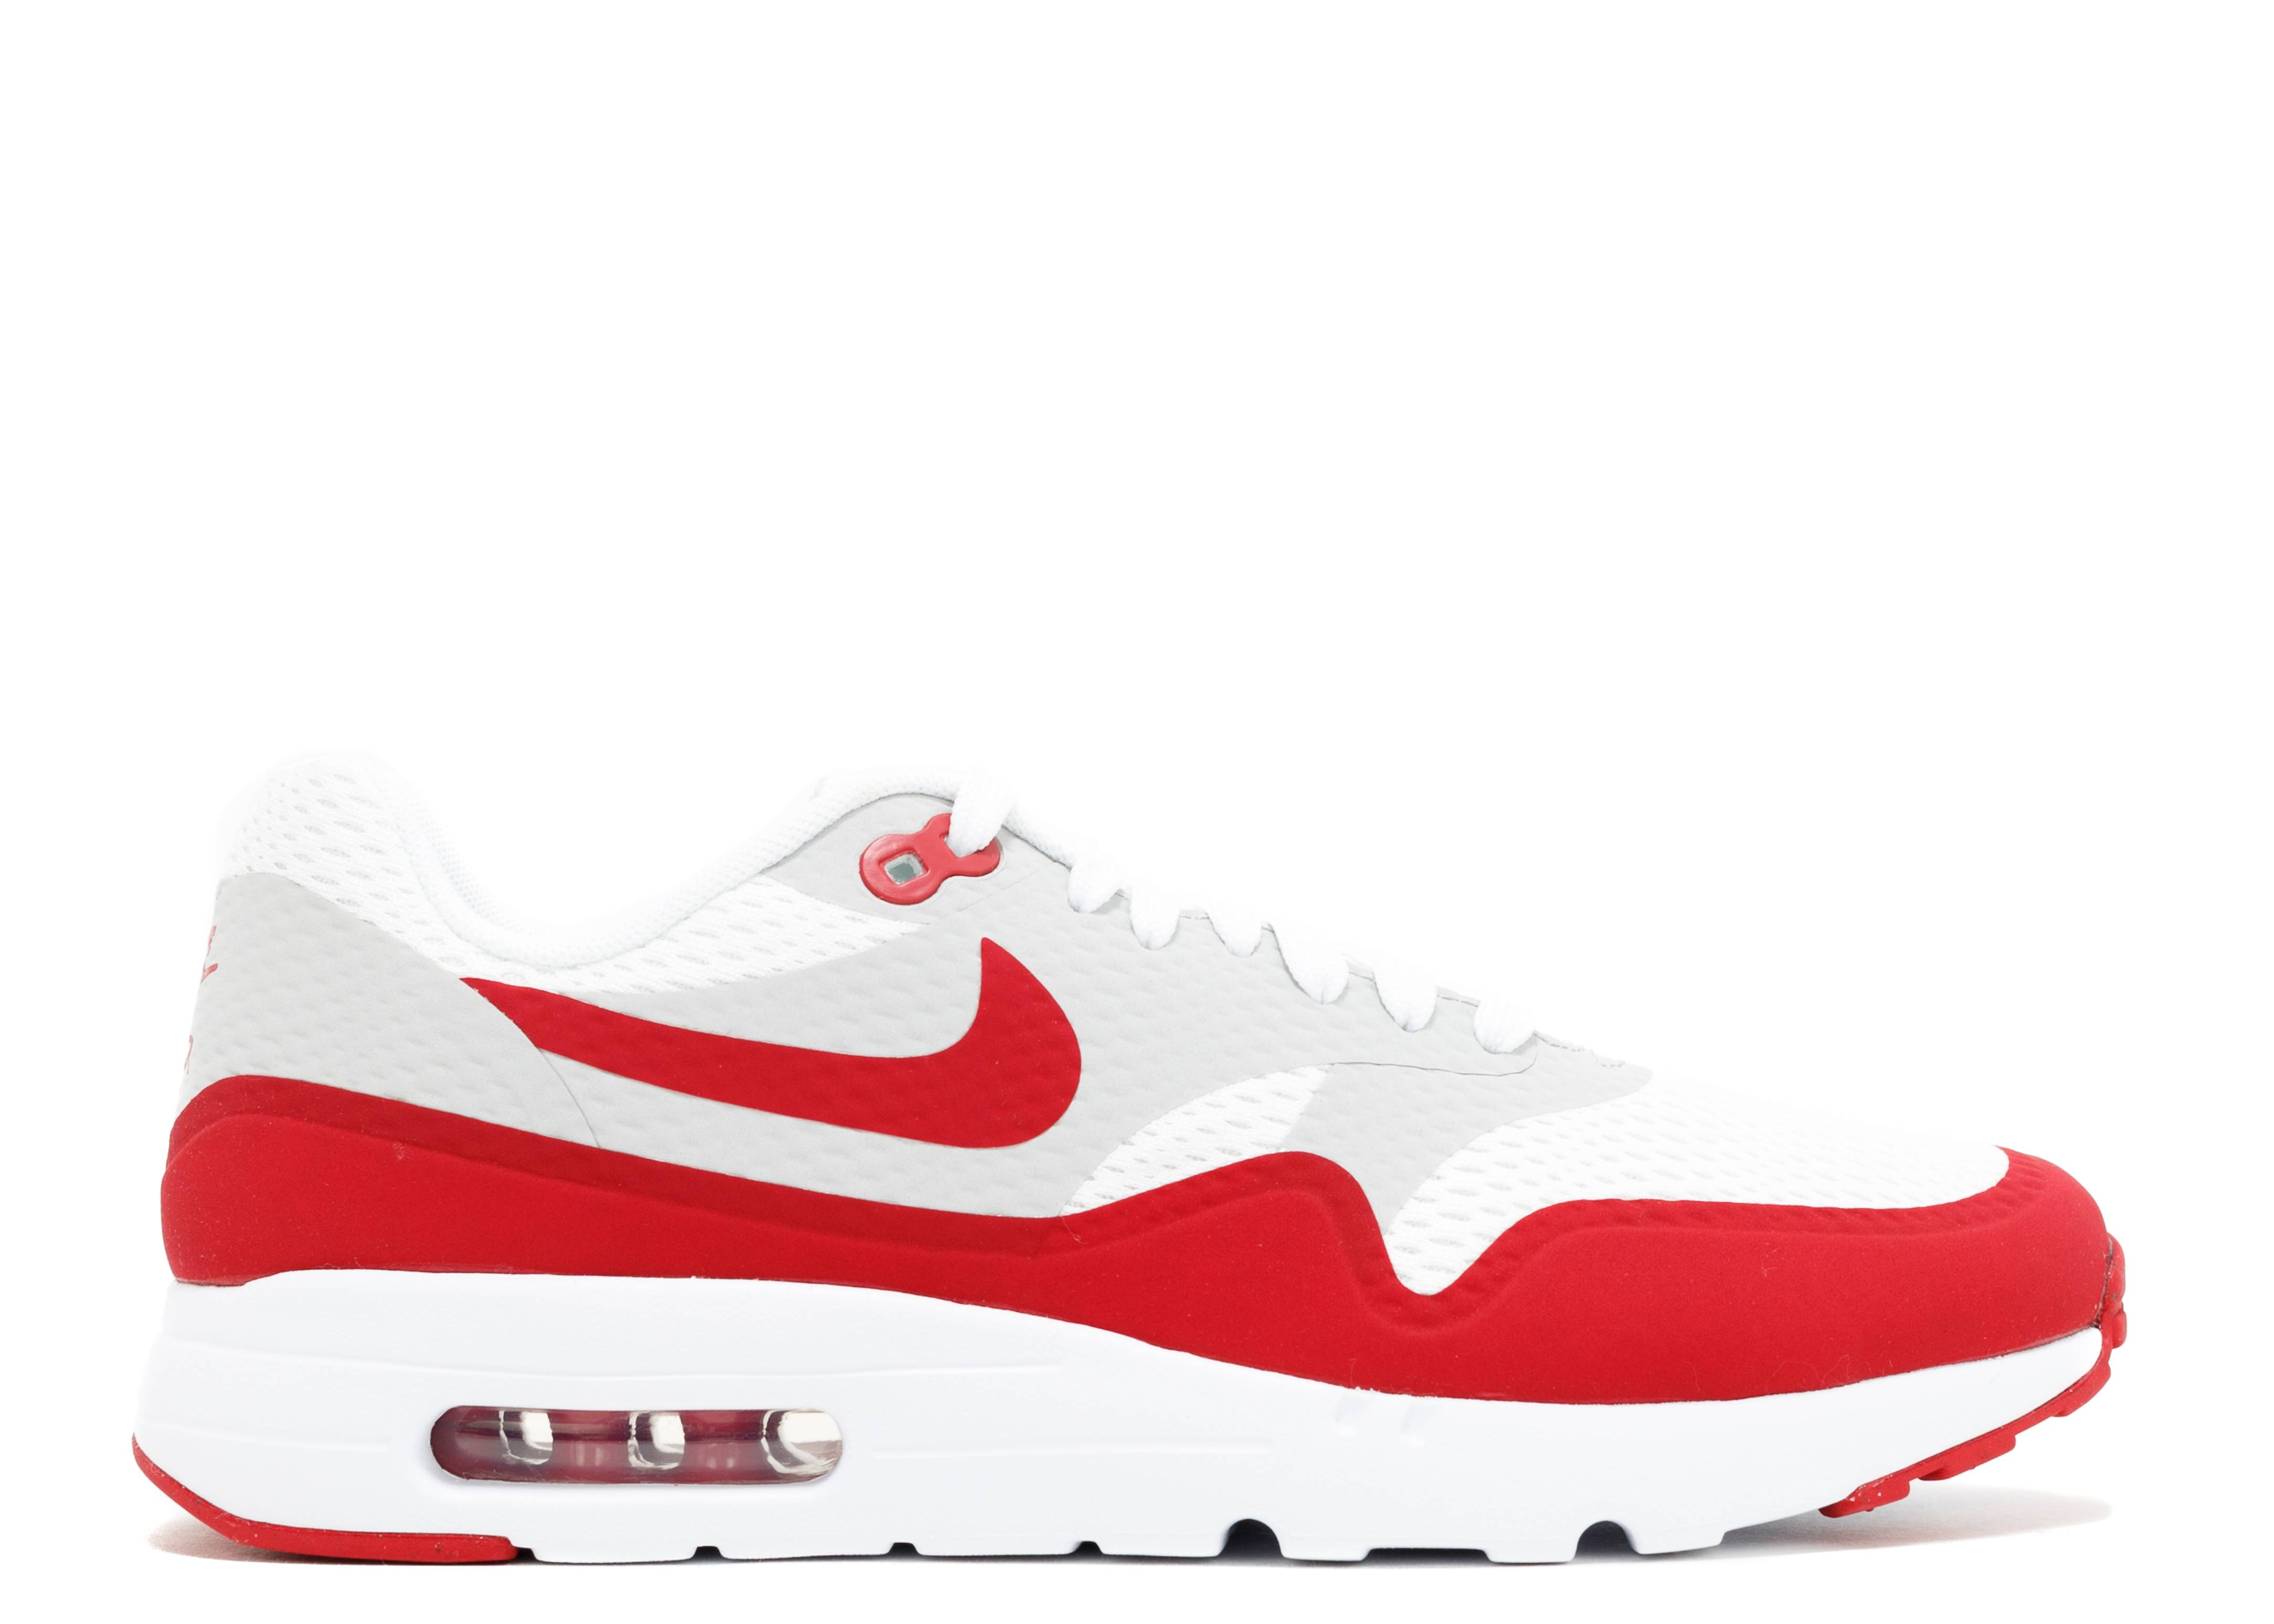 nike air max red white and grey